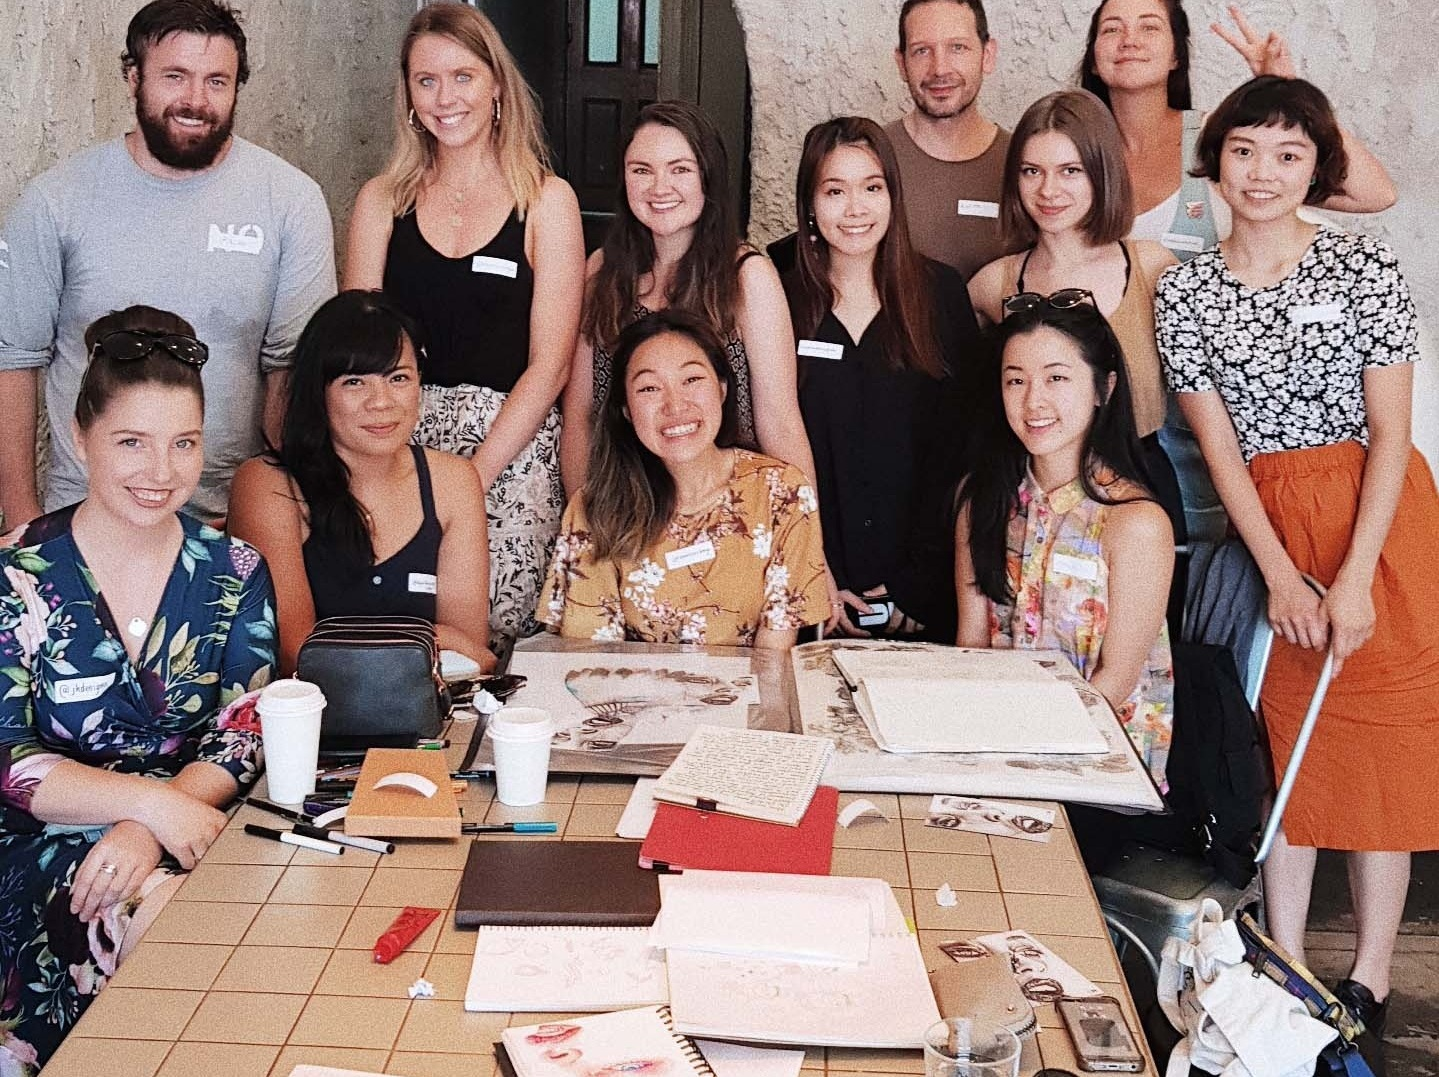 Open Sketchbook Meetup - Our free monthly meetup in Melbourne.Come along to our next meetup!